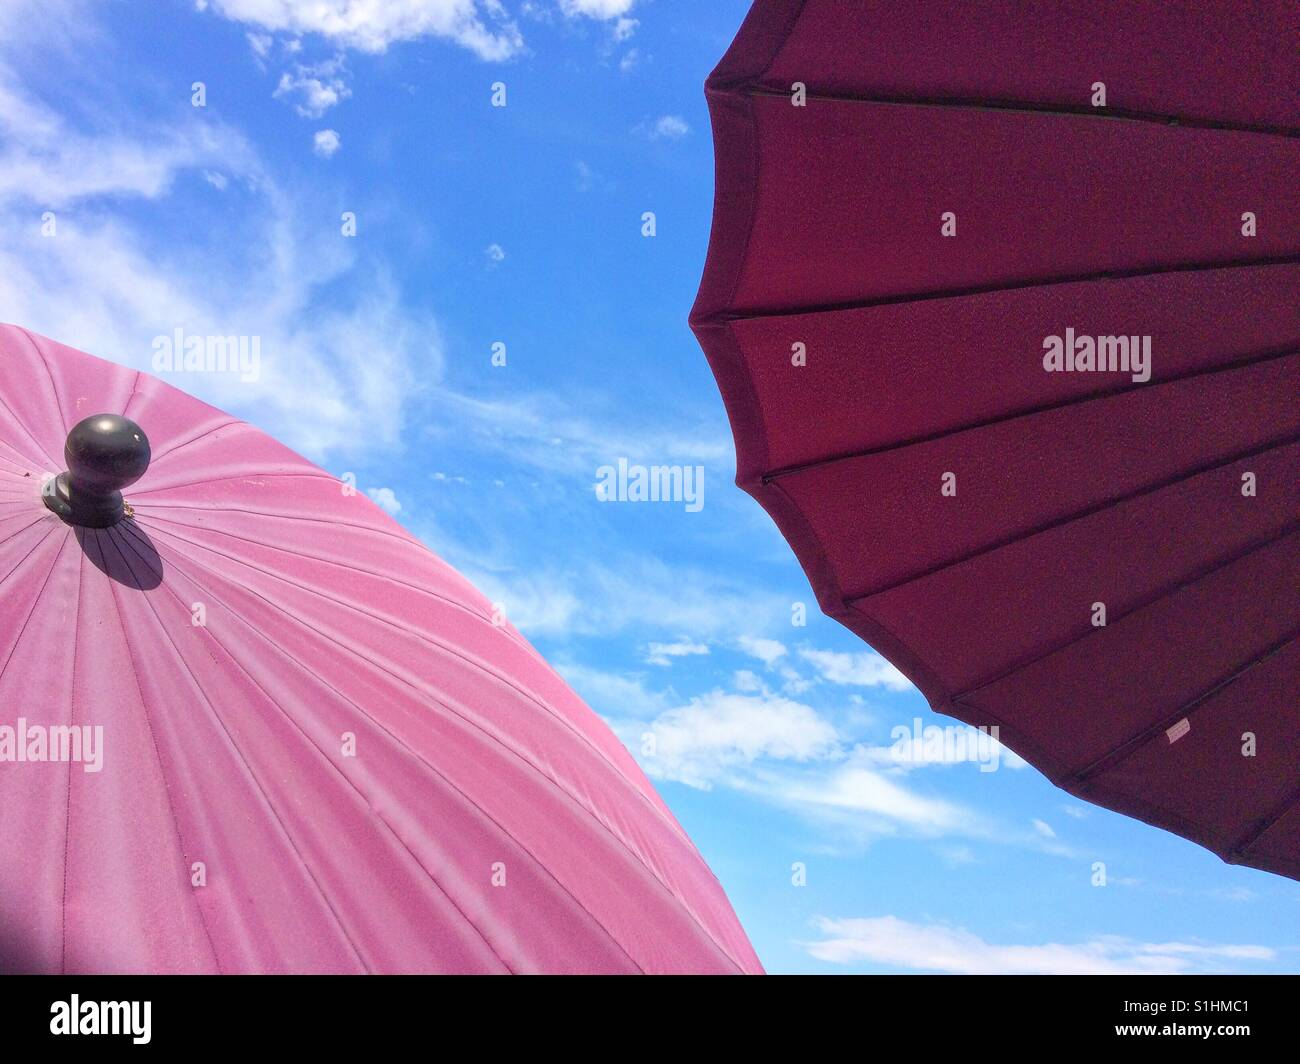 The underside and top of a pair of maroon parasols or umbrellas under a bright blue sky - Stock Image